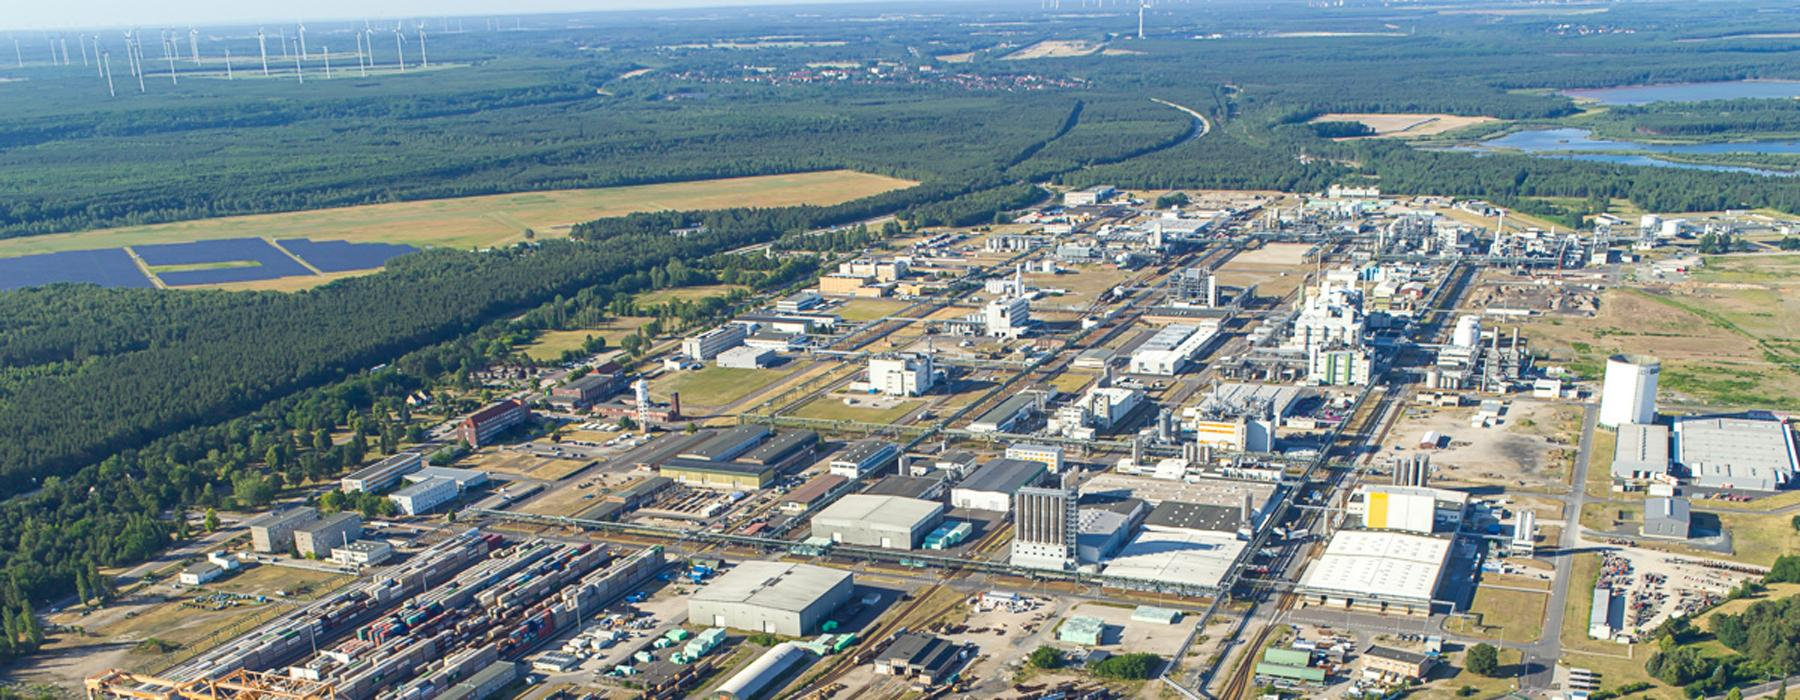 Aerial view of BASF